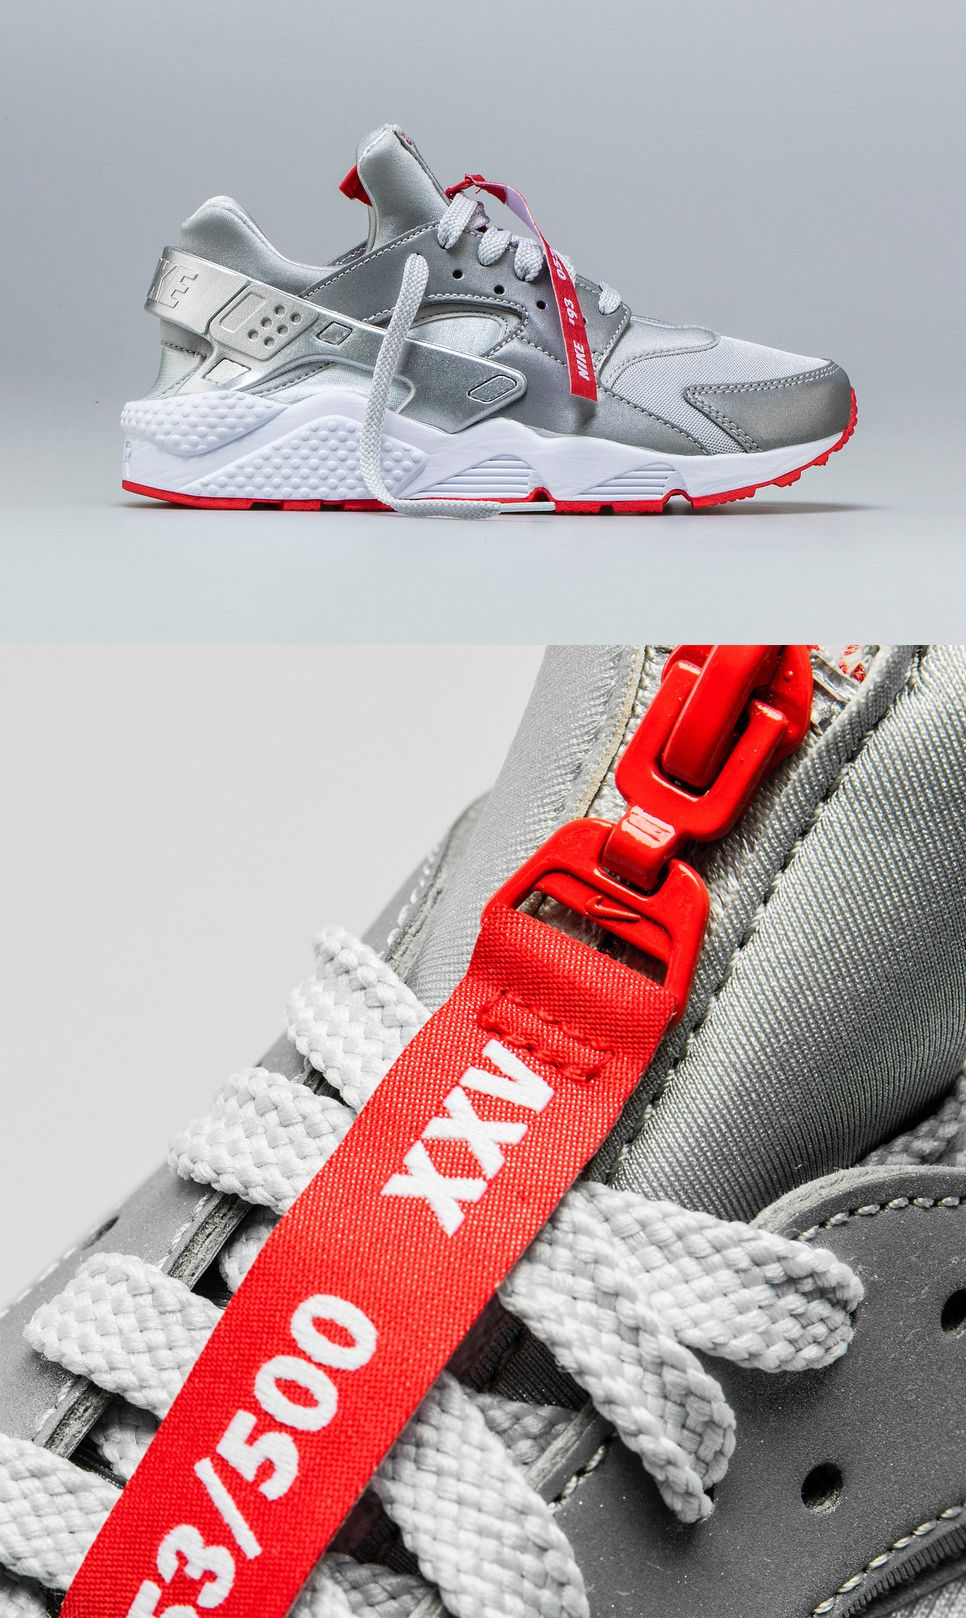 online retailer 42f77 24a4b Shoe Palace Exclusive 25th Anniversary Nike Air Huarache Zip